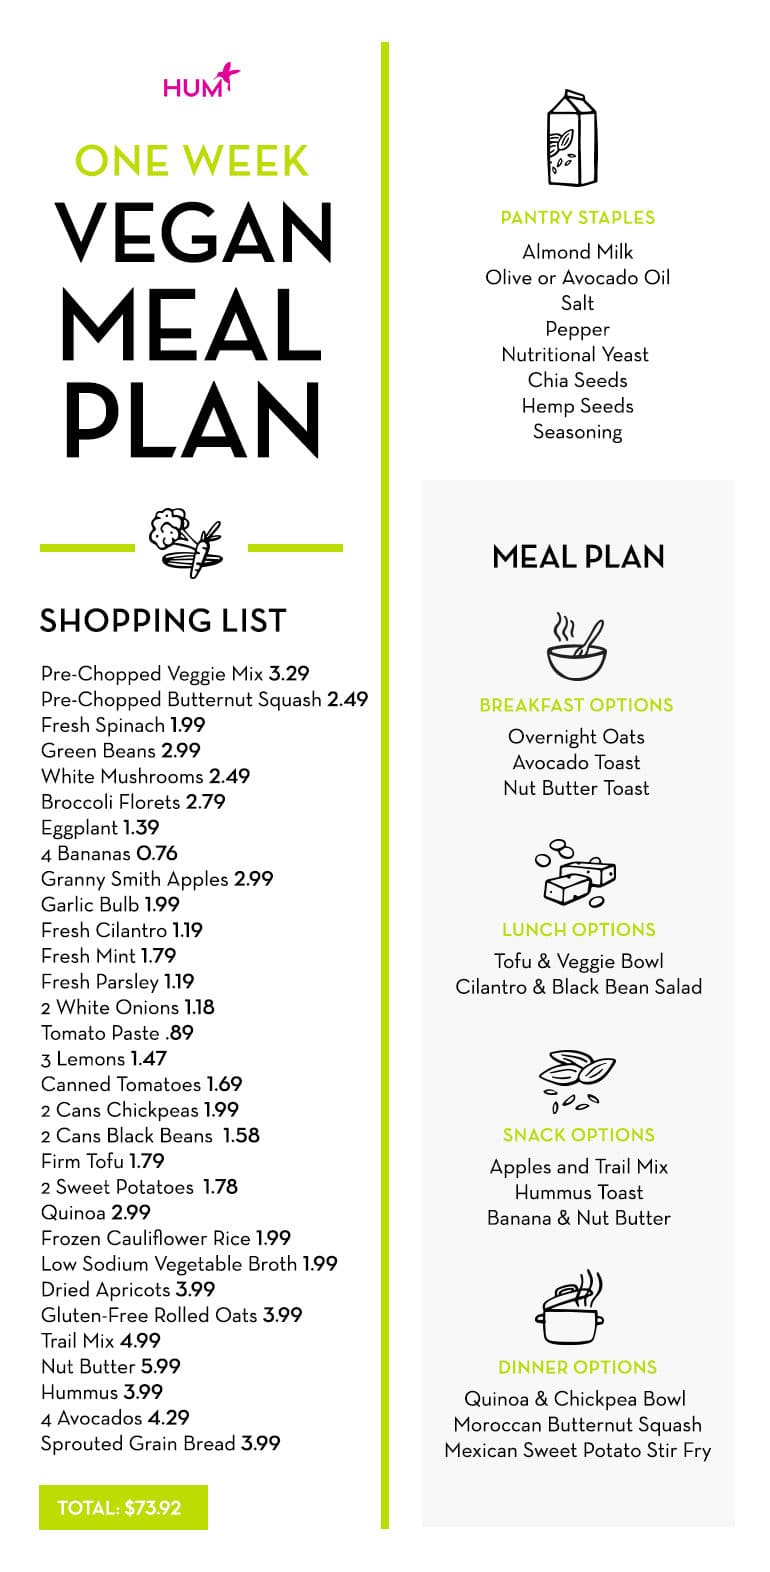 One Week Vegan Meal Plan | The Wellnest by HUM Nutrition